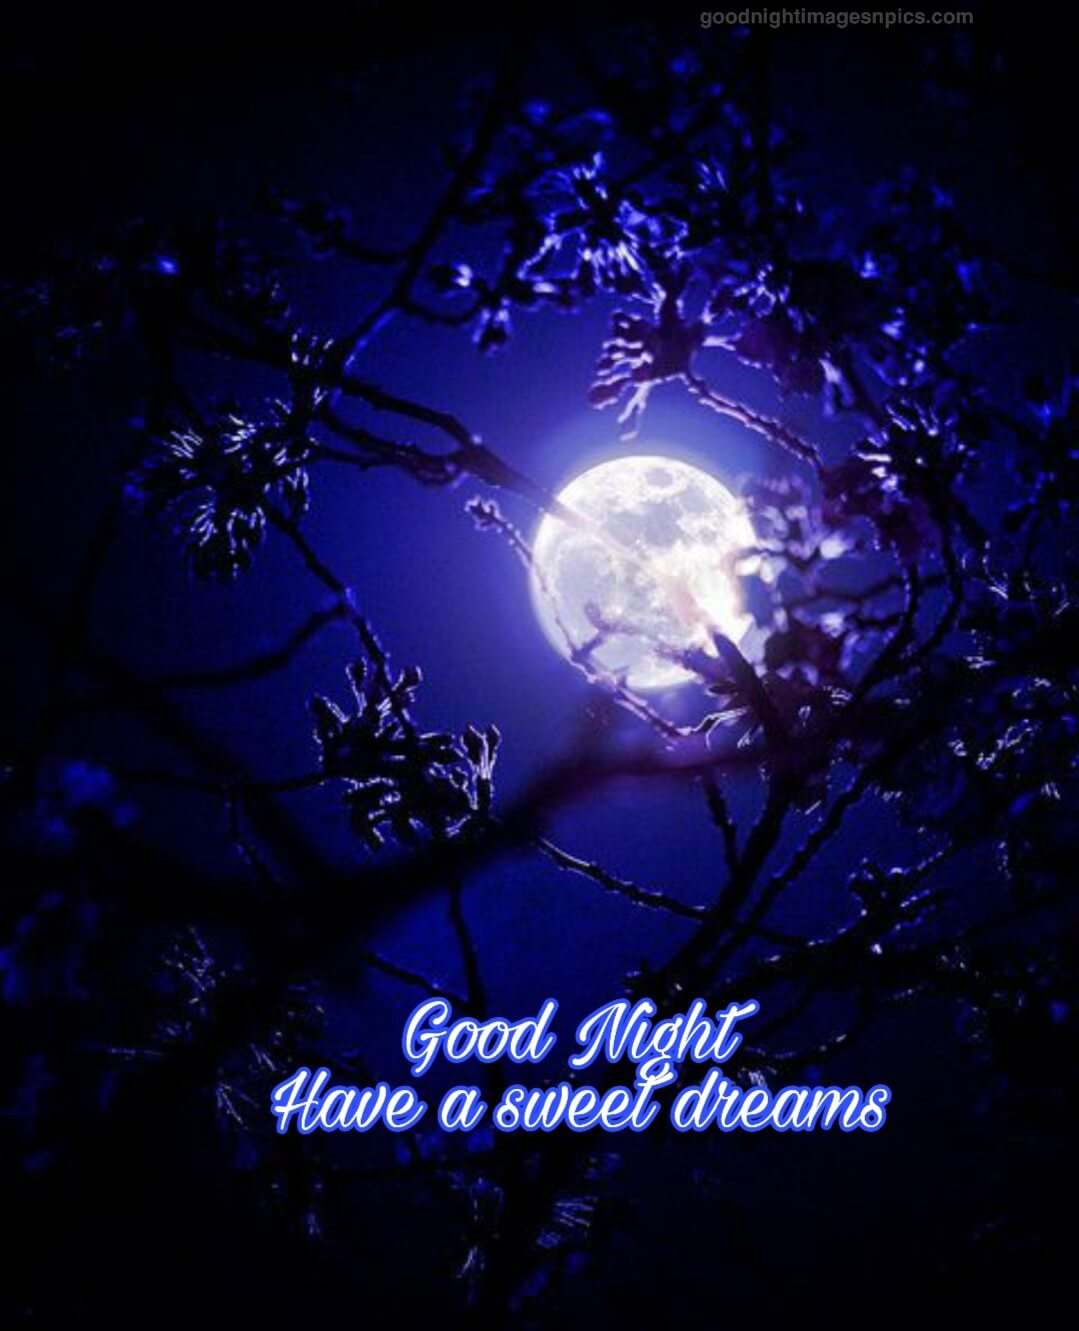 Good Night Photos And Quotes